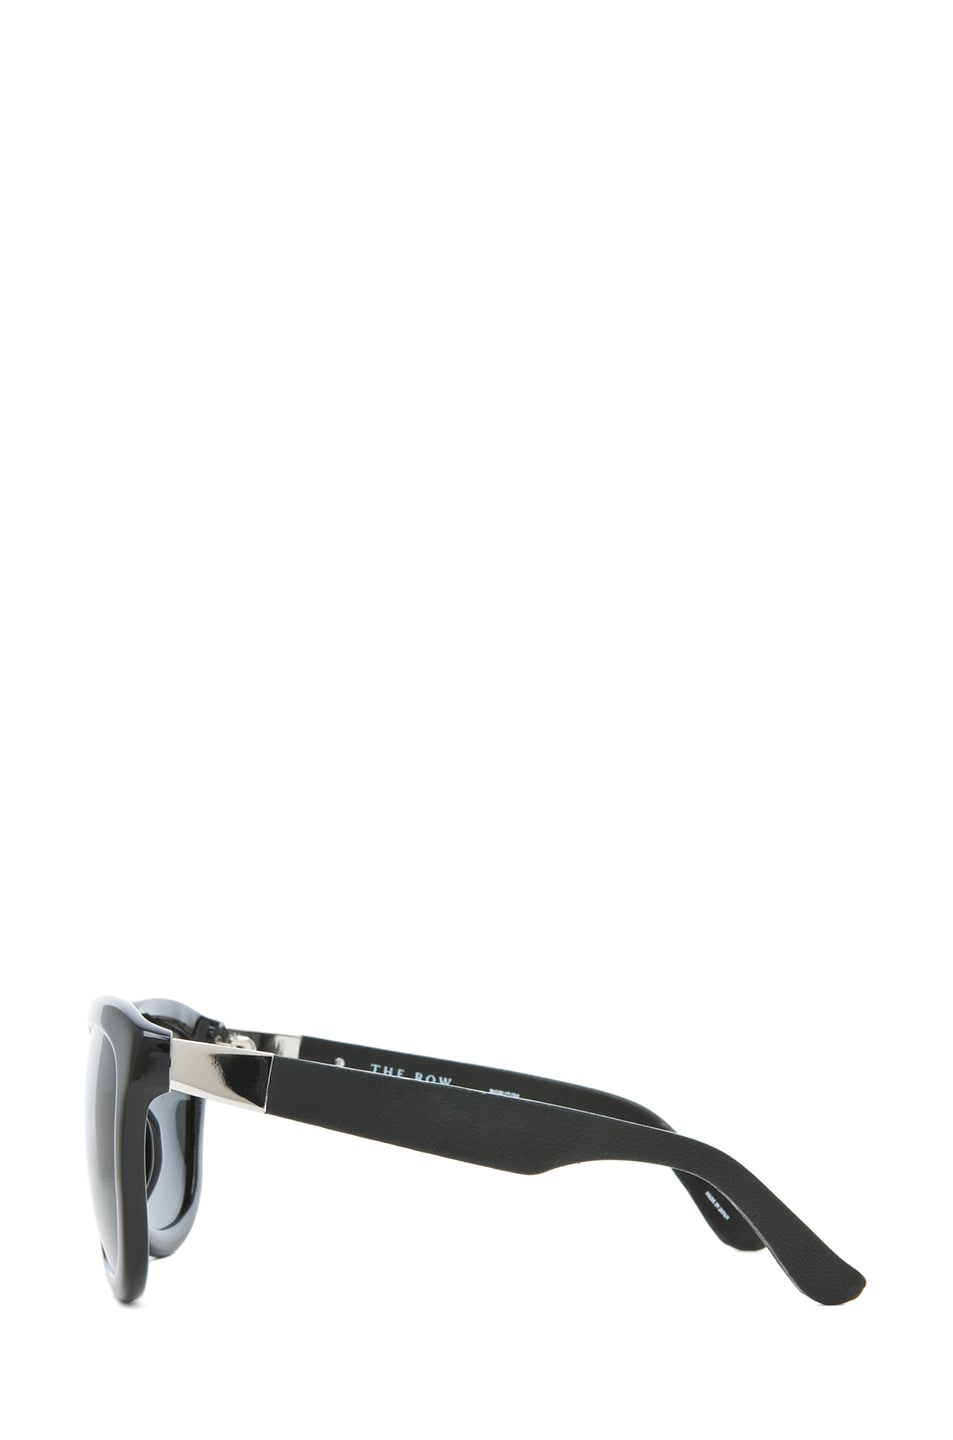 Image 3 of The Row Temple Design D-Frame Sunglasses in Black